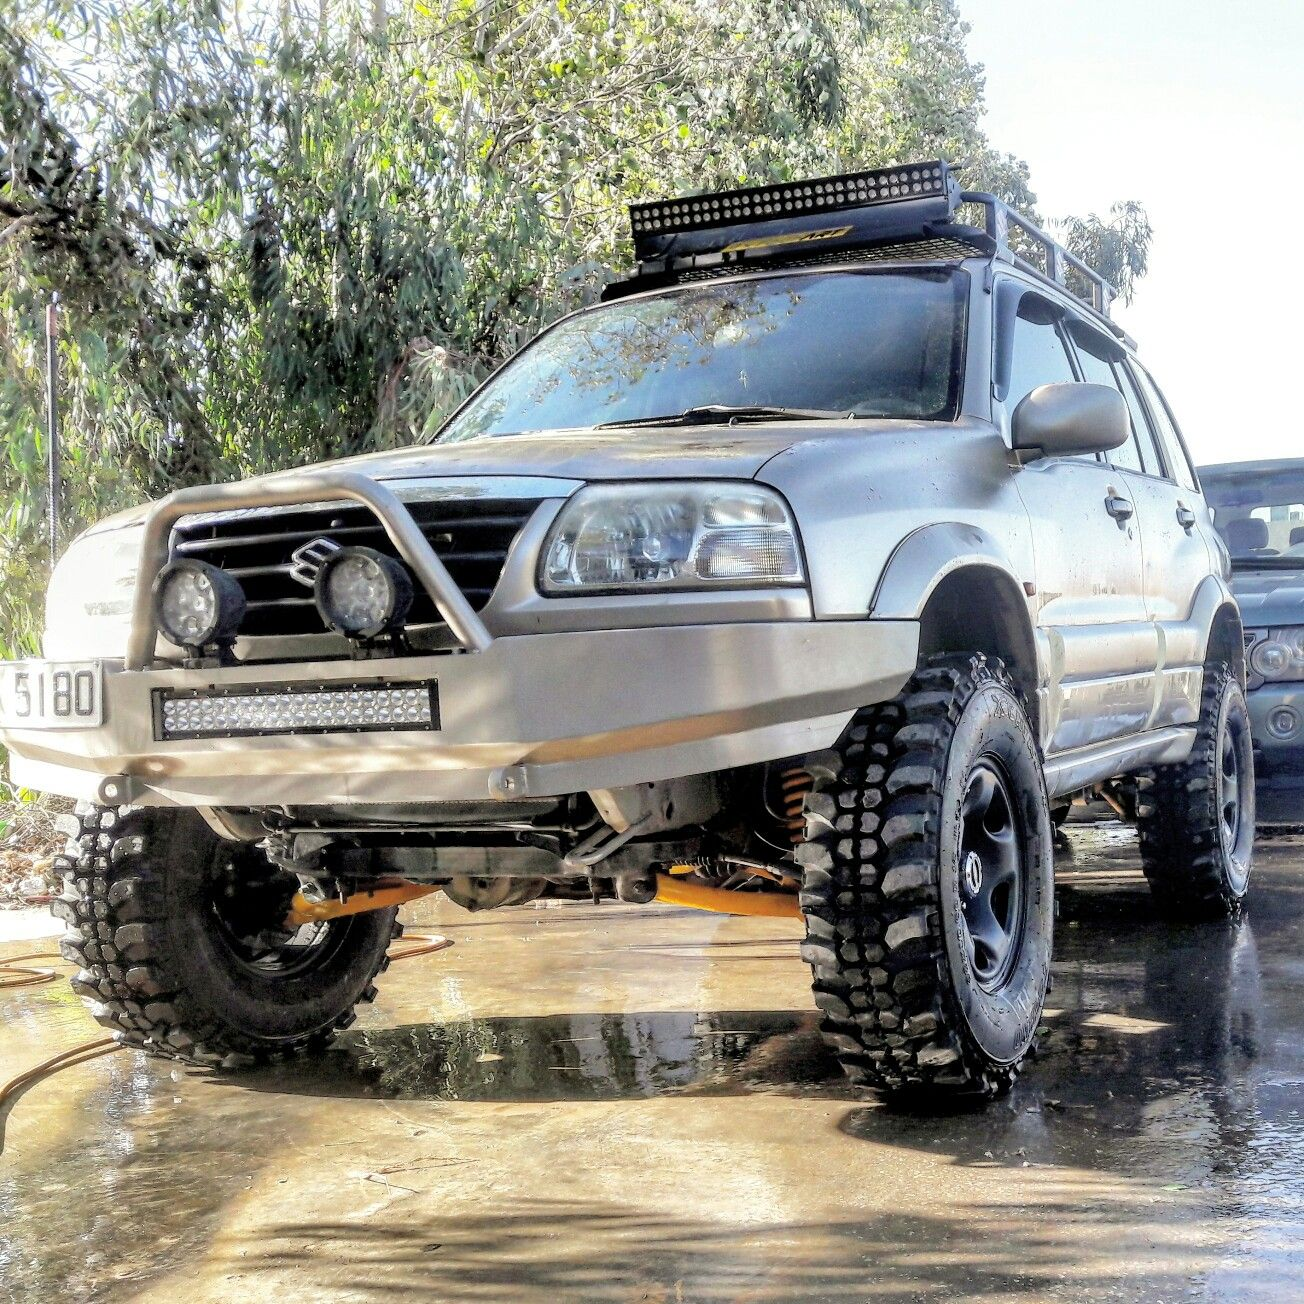 suzuki grand vitara off road 4x4 suzuki grand vitara pinterest grand vitara 4x4 and front. Black Bedroom Furniture Sets. Home Design Ideas